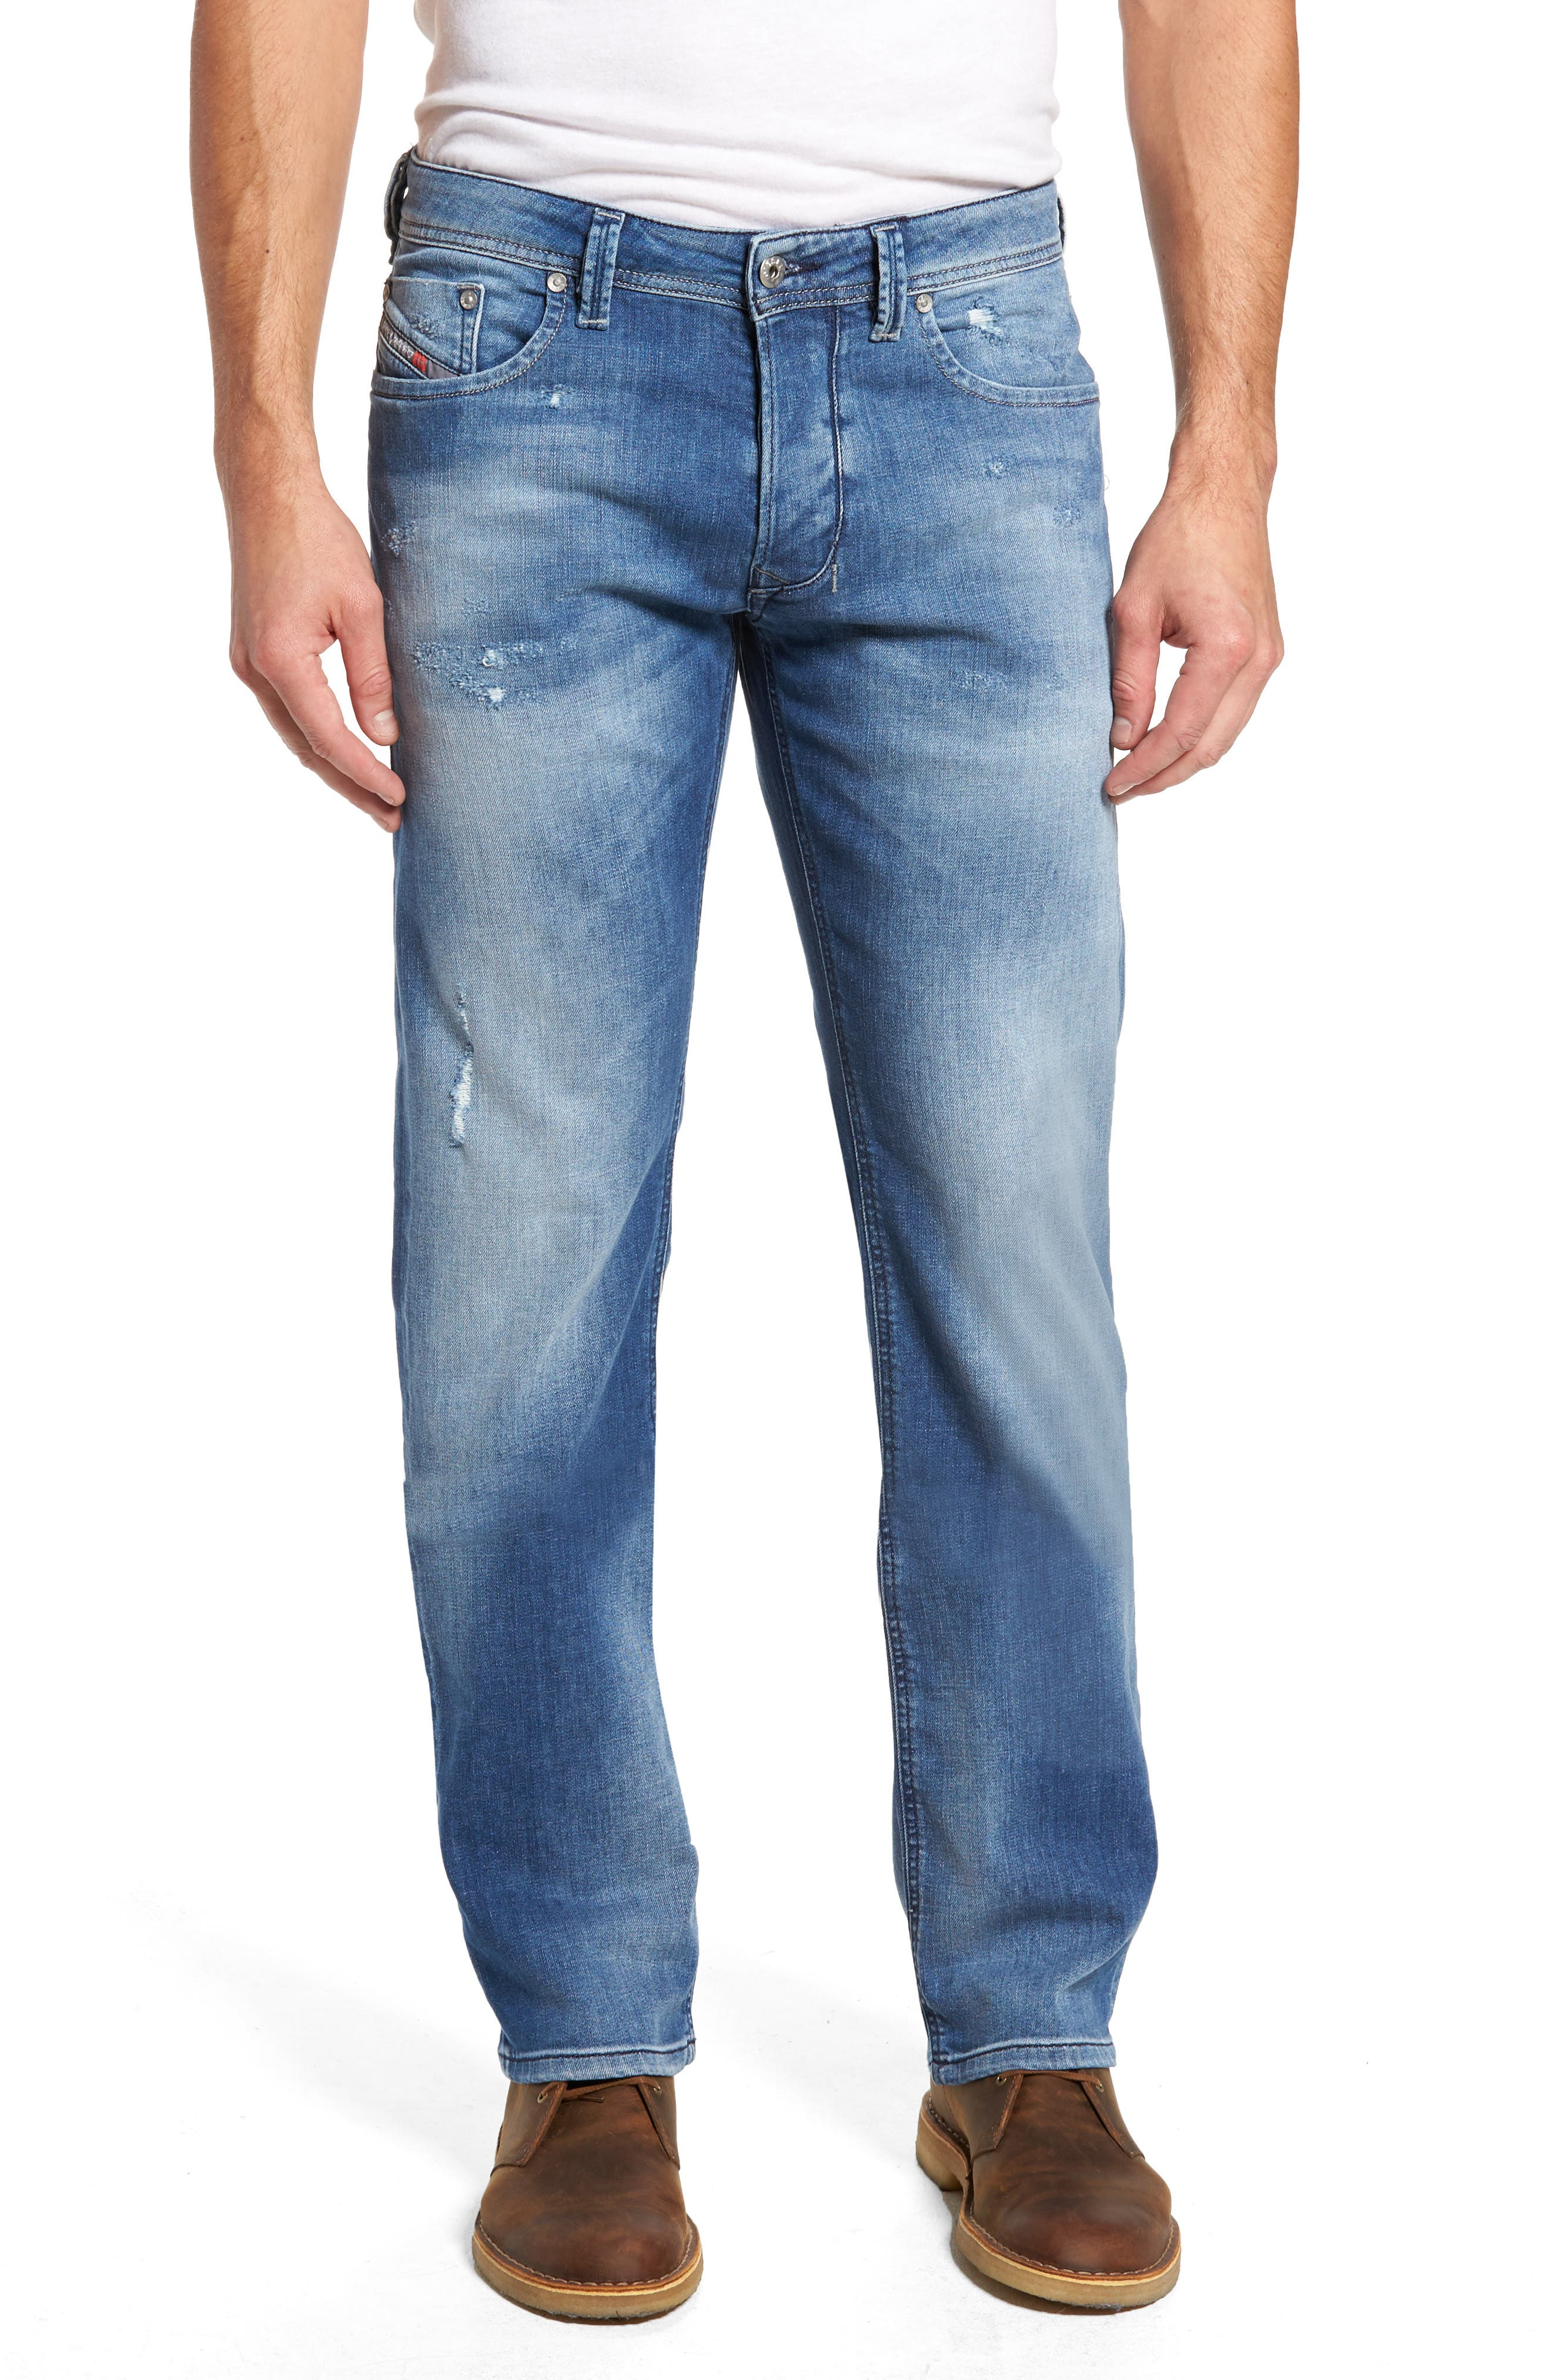 Larkee Relaxed Fit Jeans,                             Main thumbnail 1, color,